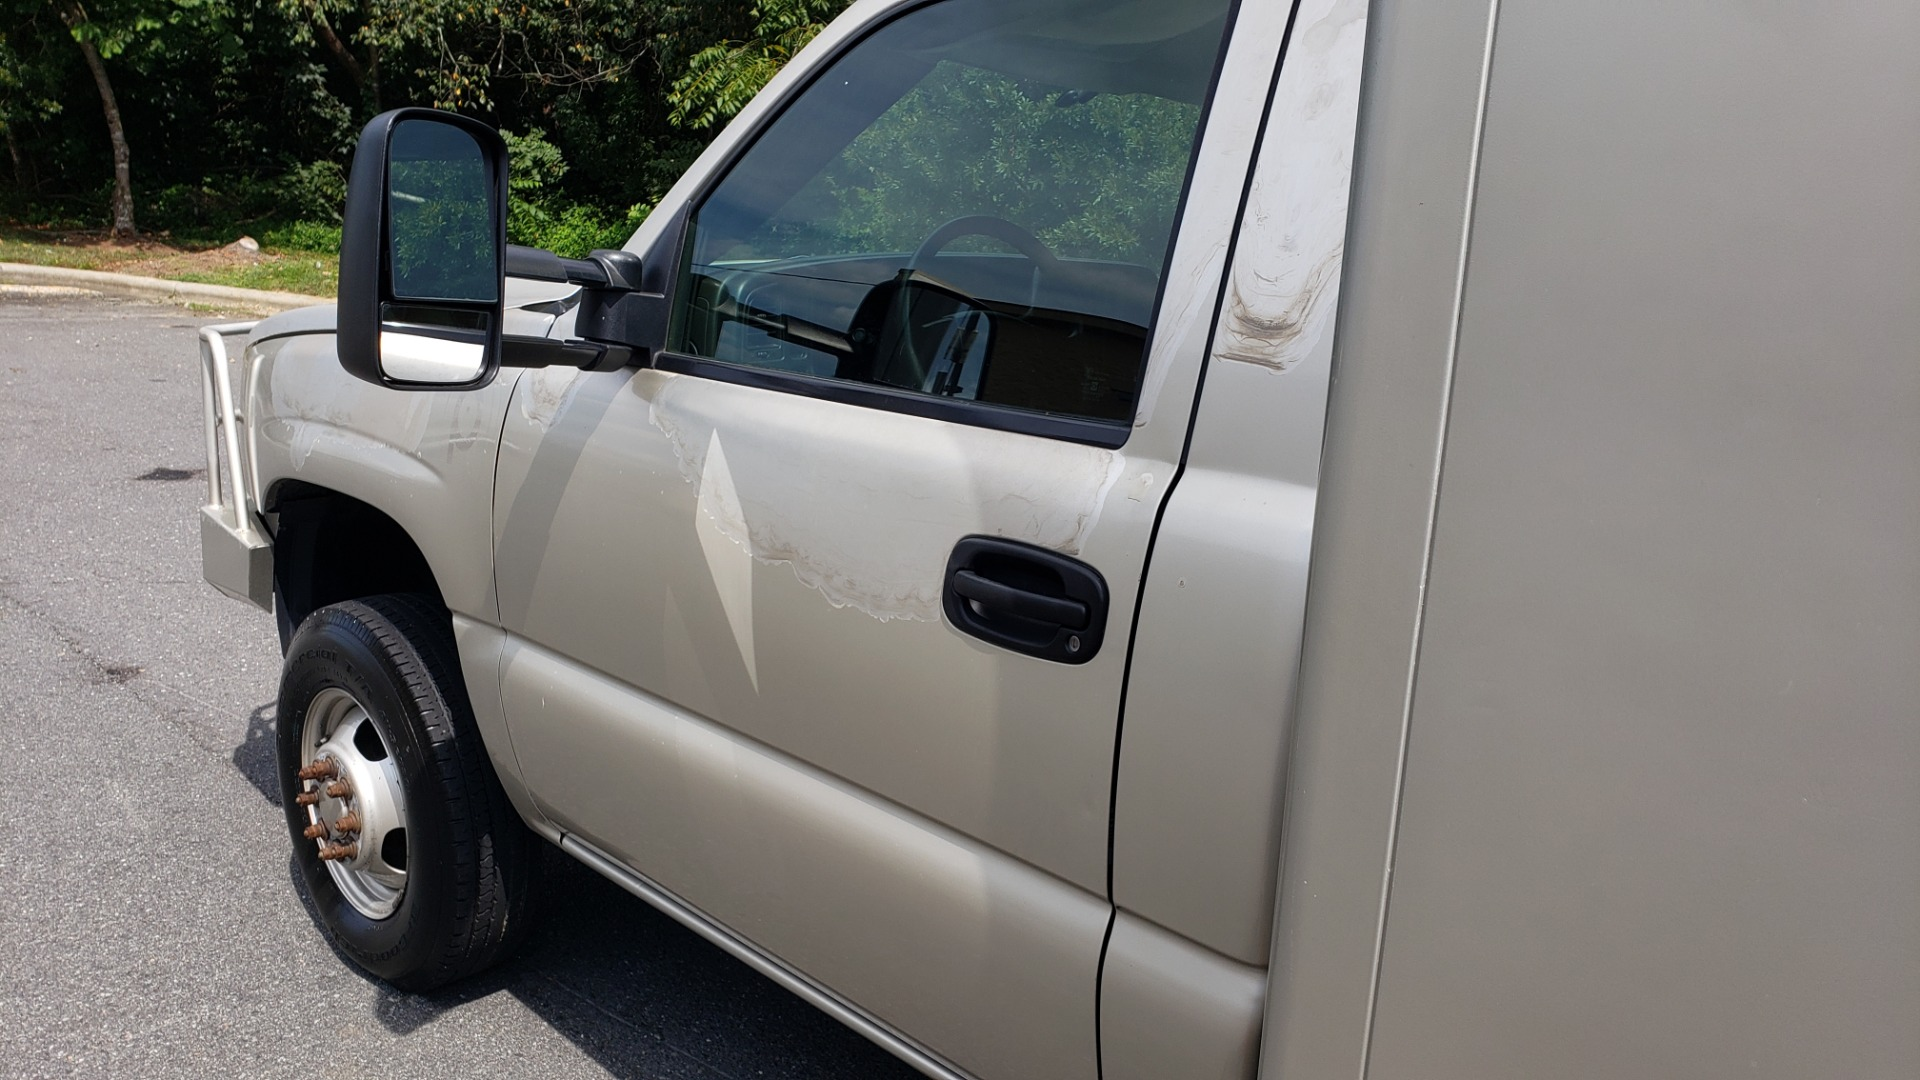 Used 2005 Chevrolet SILVERADO 3500 DRW / 4WD / REG CAB / 6.6L DURAMAX / DOOMSDAY PREPPER for sale $23,995 at Formula Imports in Charlotte NC 28227 9